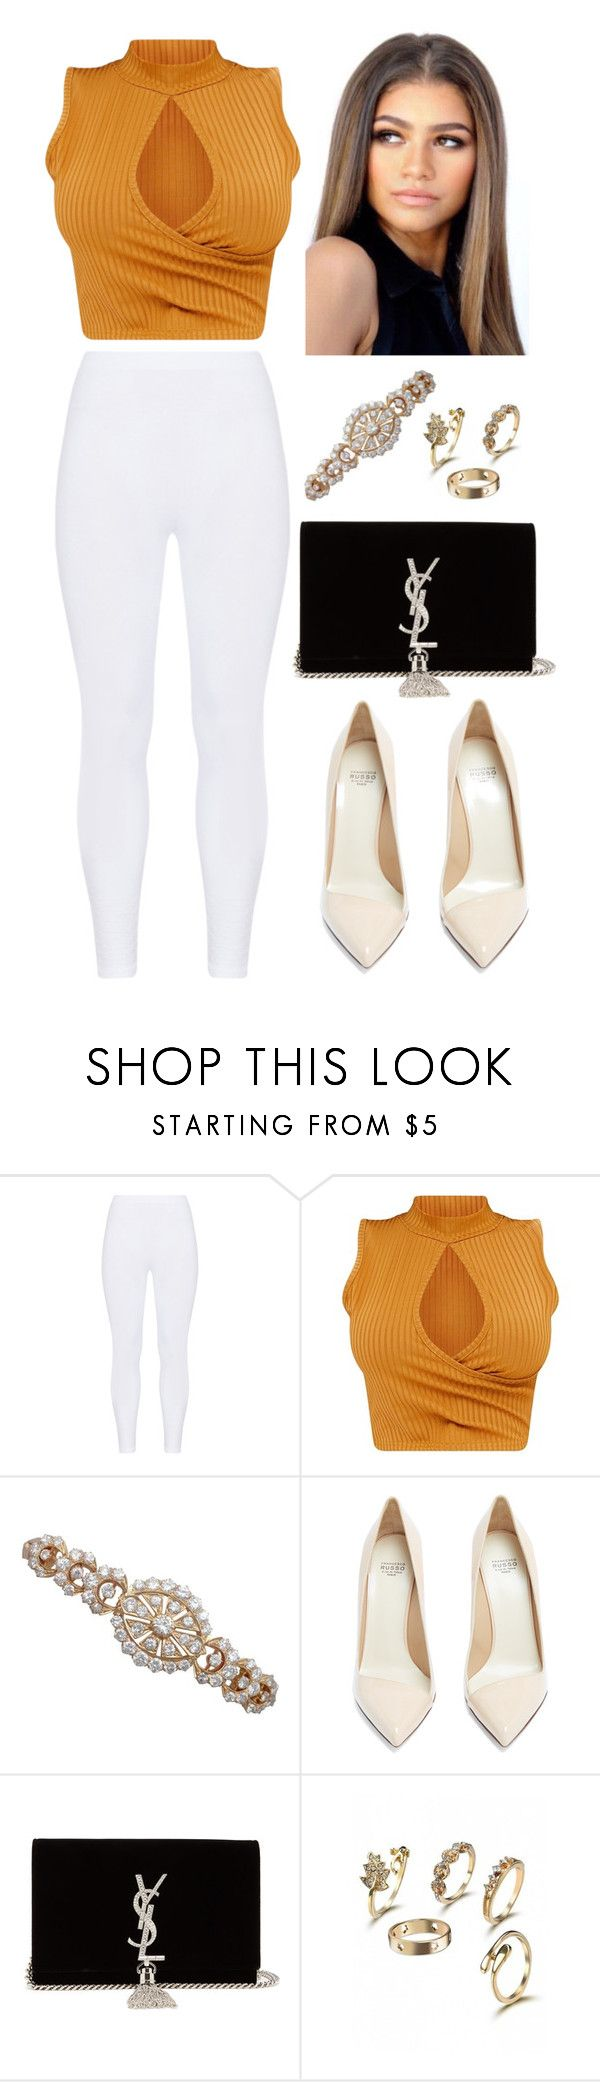 """""""696"""" by francescas22 on Polyvore featuring Gozzip, Francesco Russo and Yves Saint Laurent"""